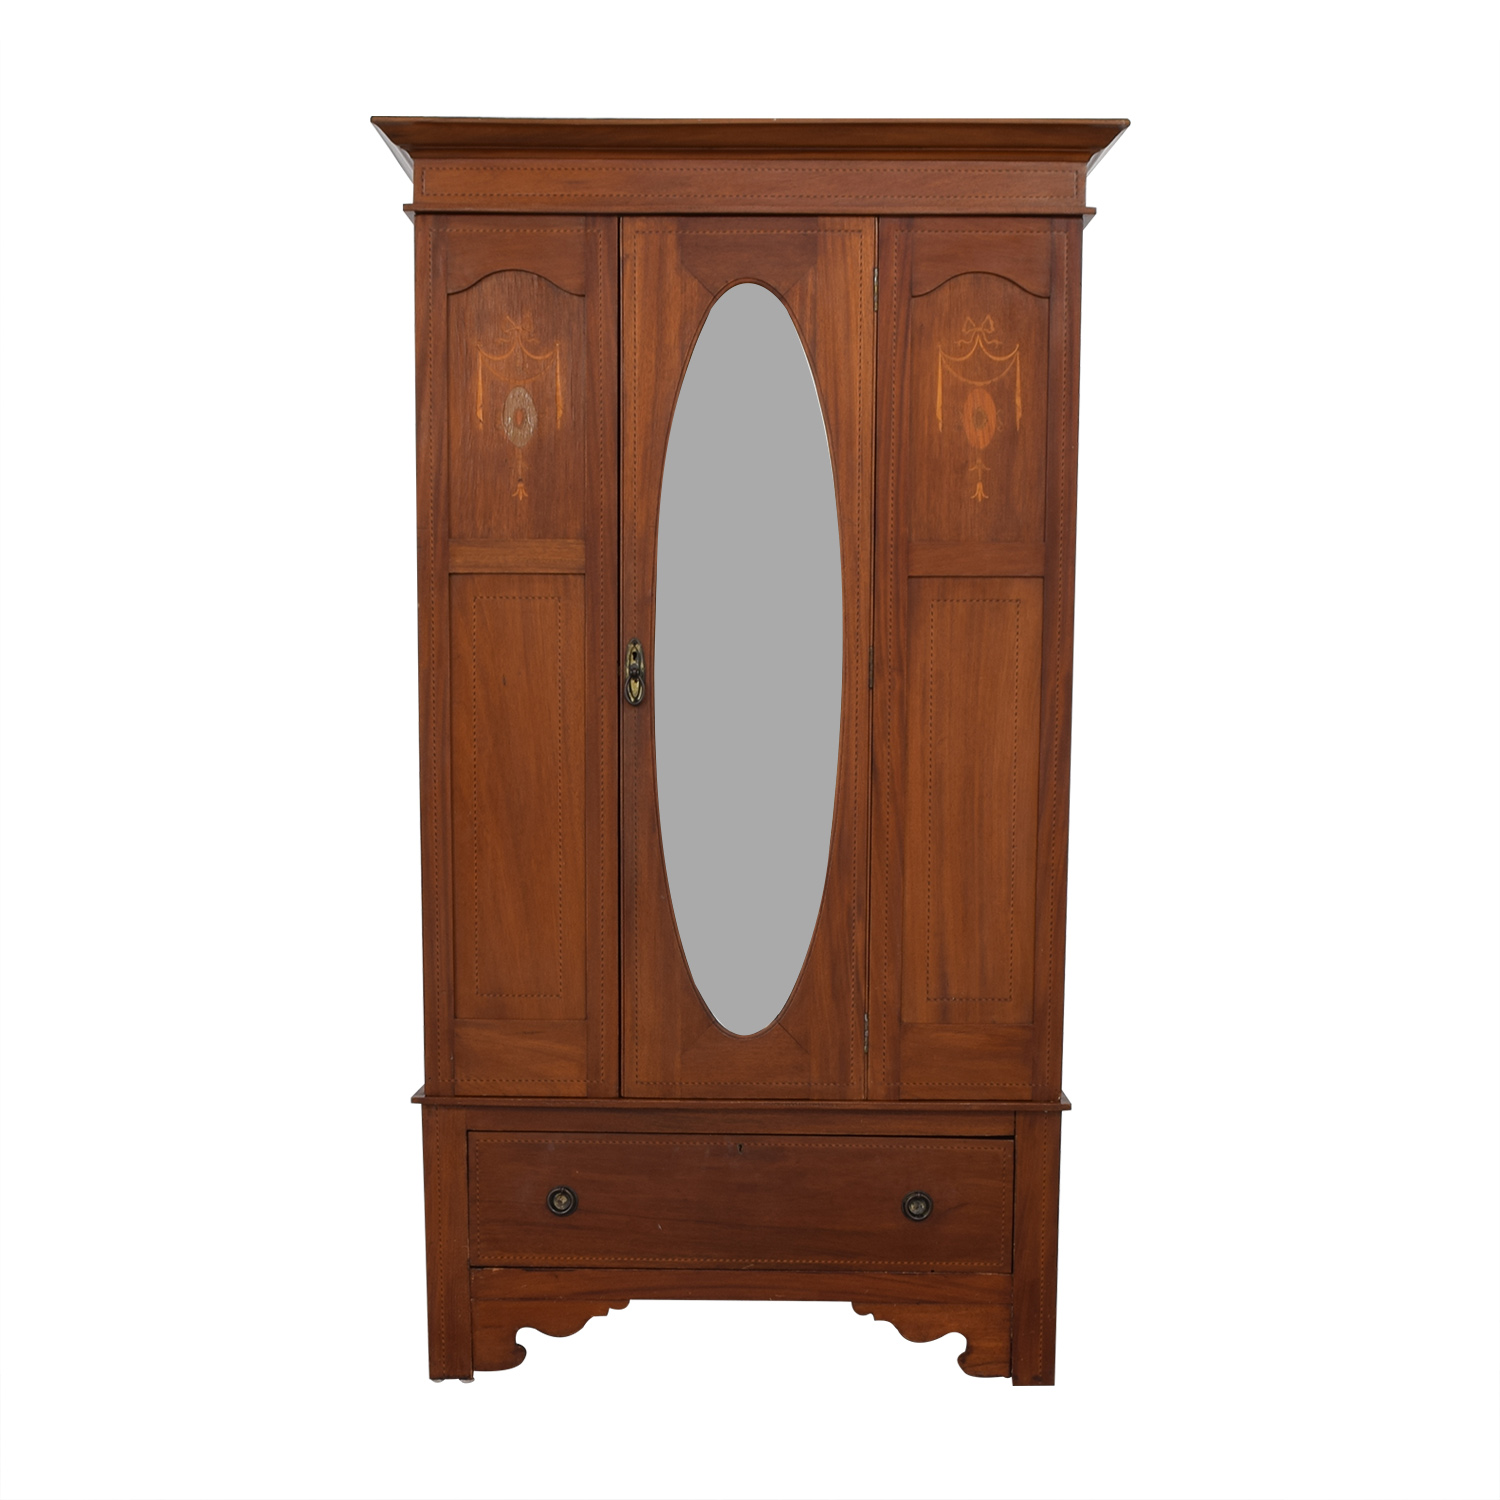 ABC Carpet & Home ABC Carpet & Home Armoire with Mirror Storage